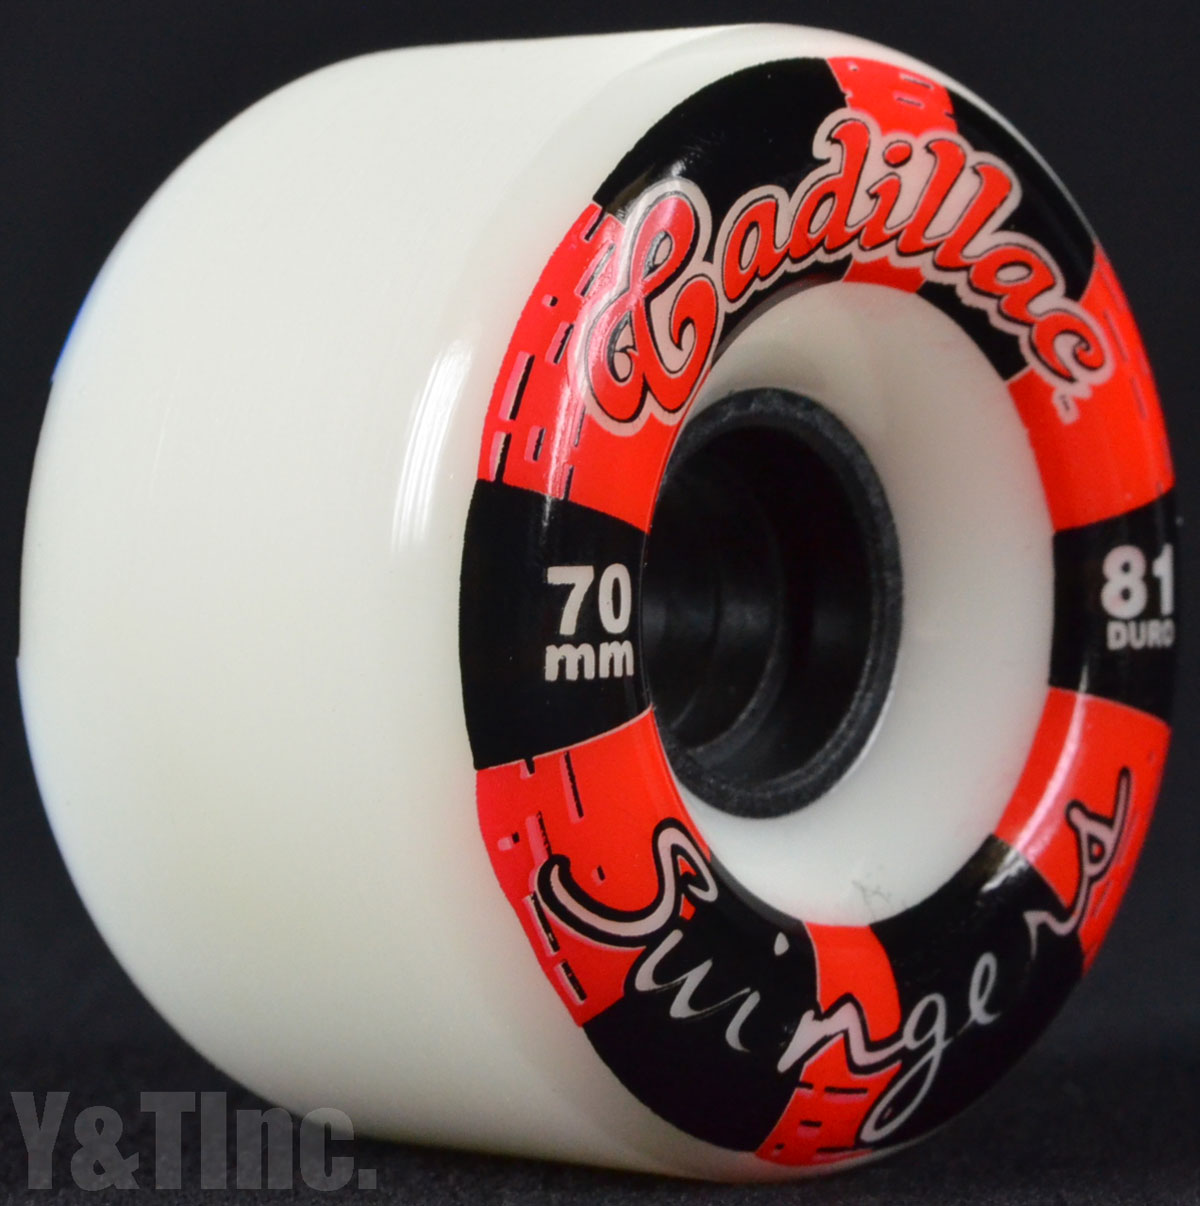 CADILLAC SWINGERS 70mm 81a White 2